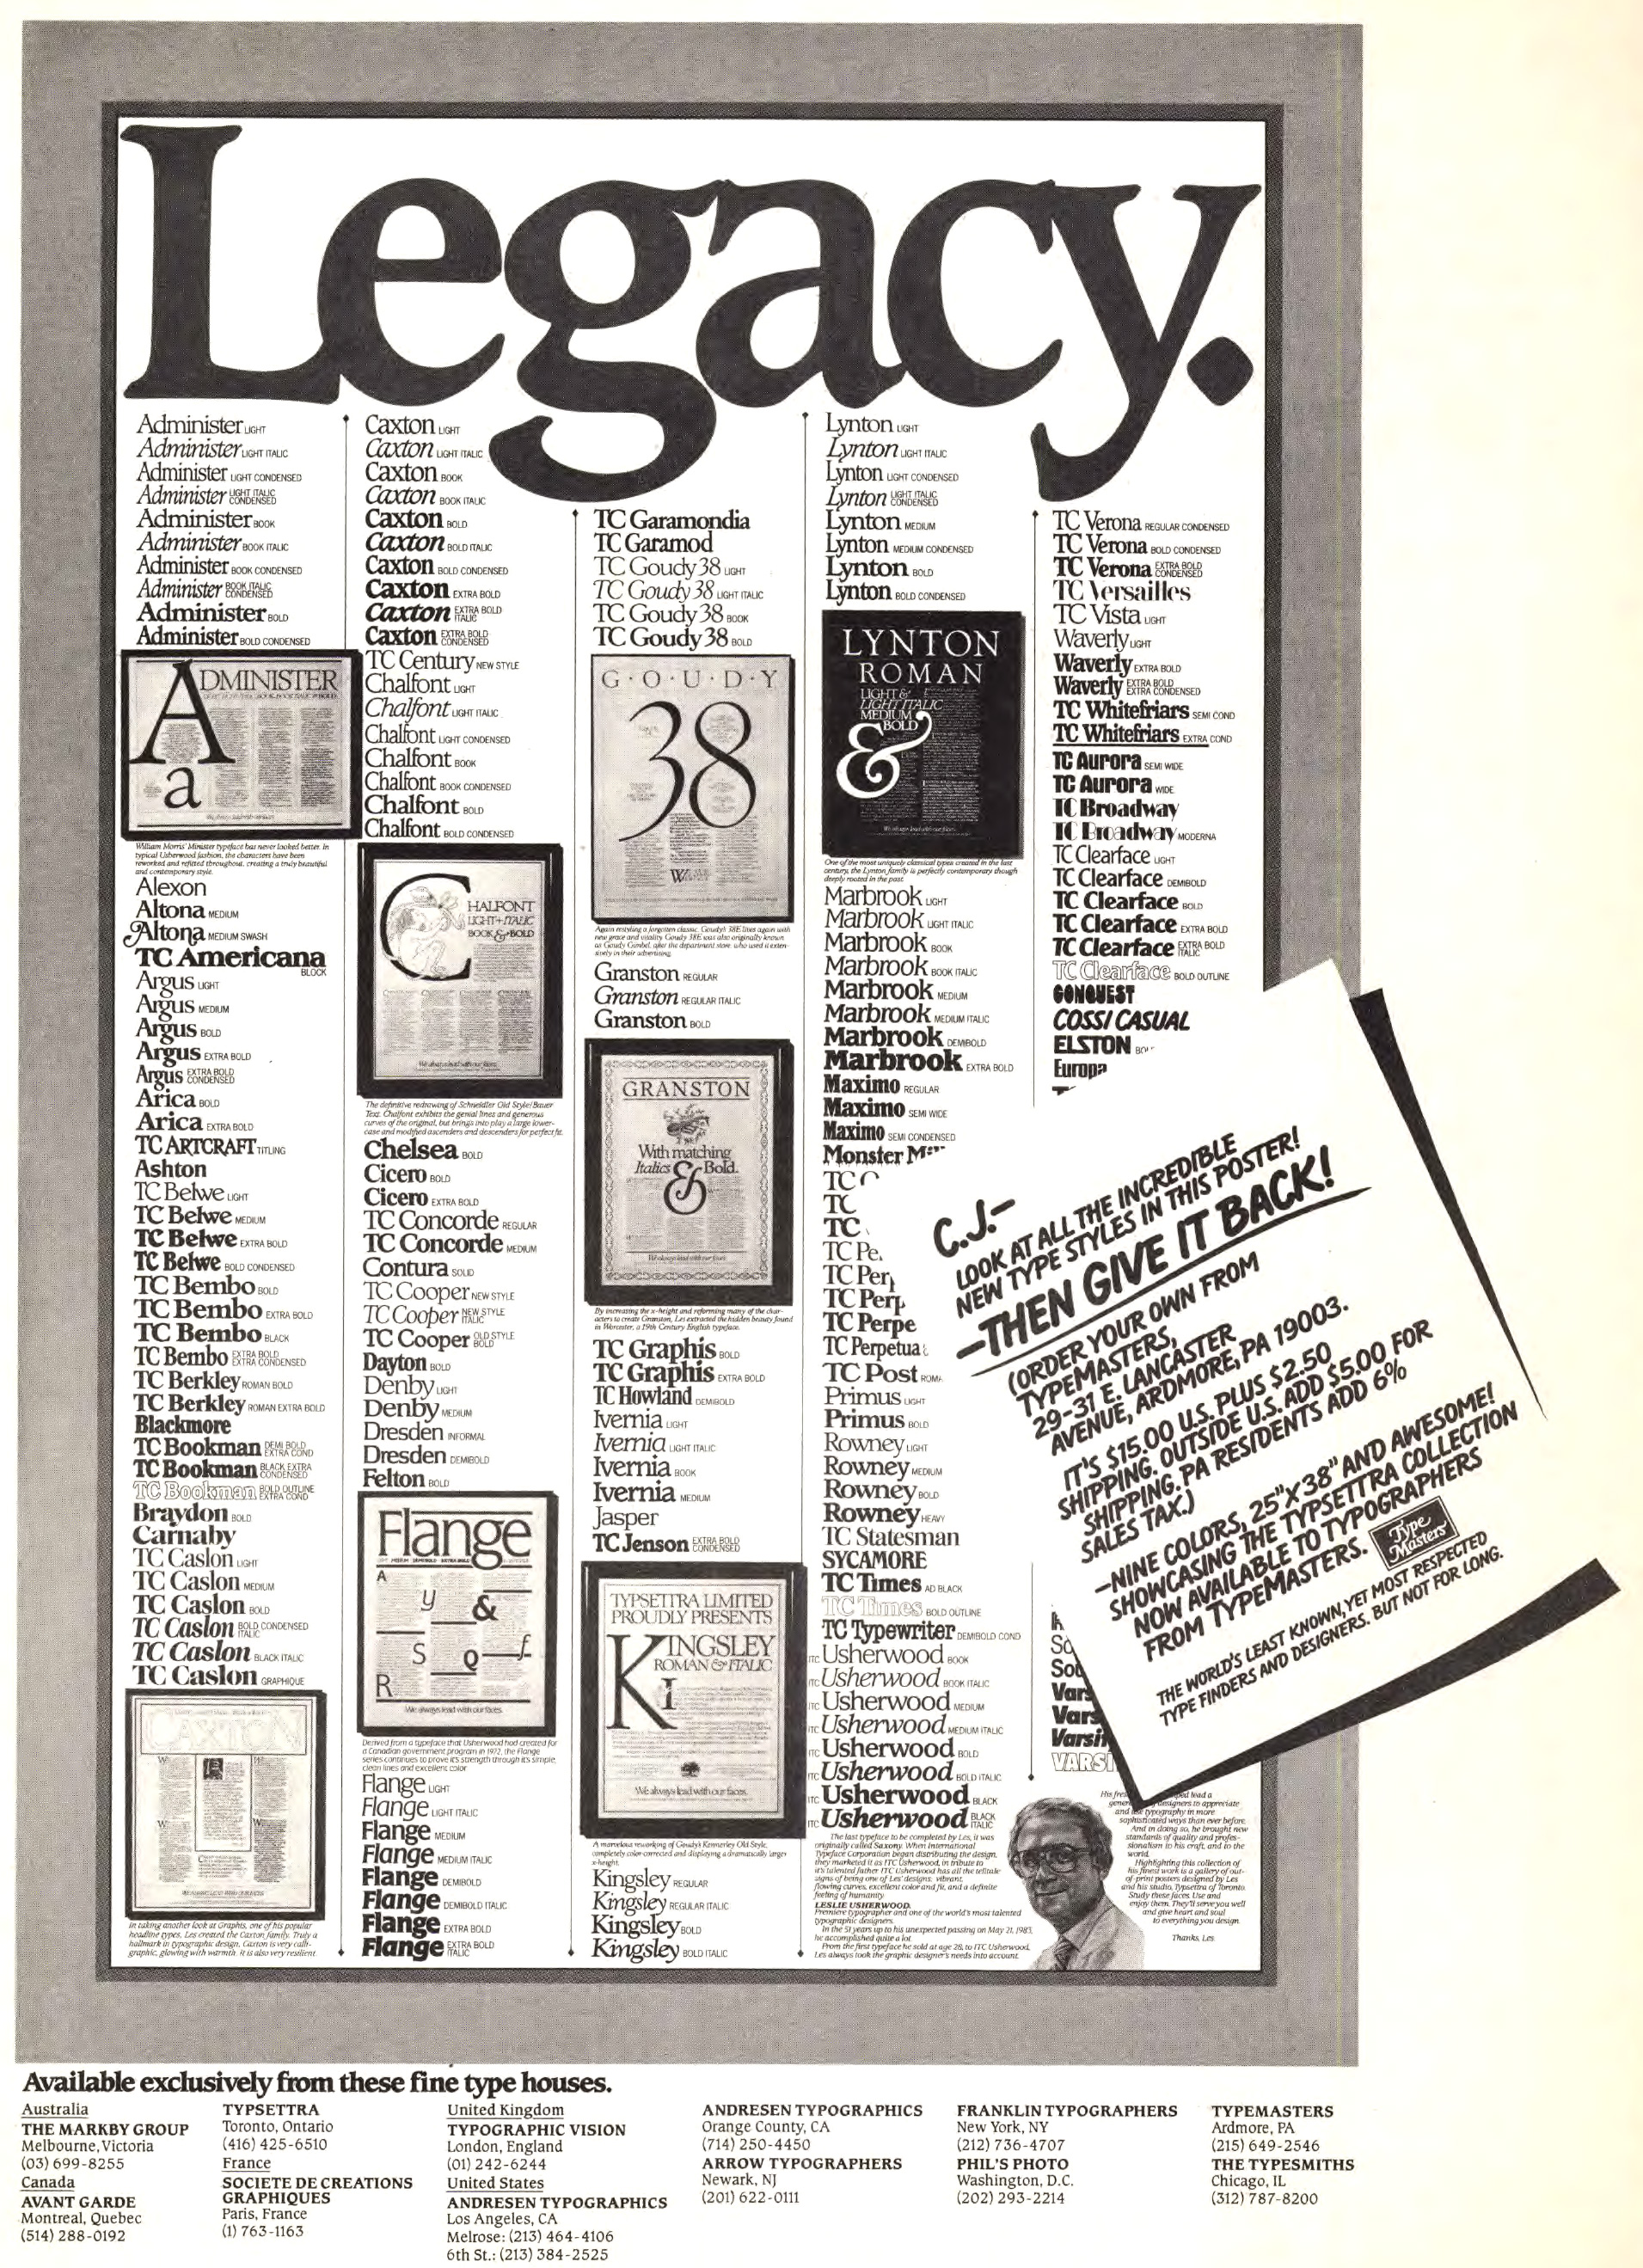 "Les Usherwood ""Legacy"" poster, advertised by TypeMasters, Inc., 1984"